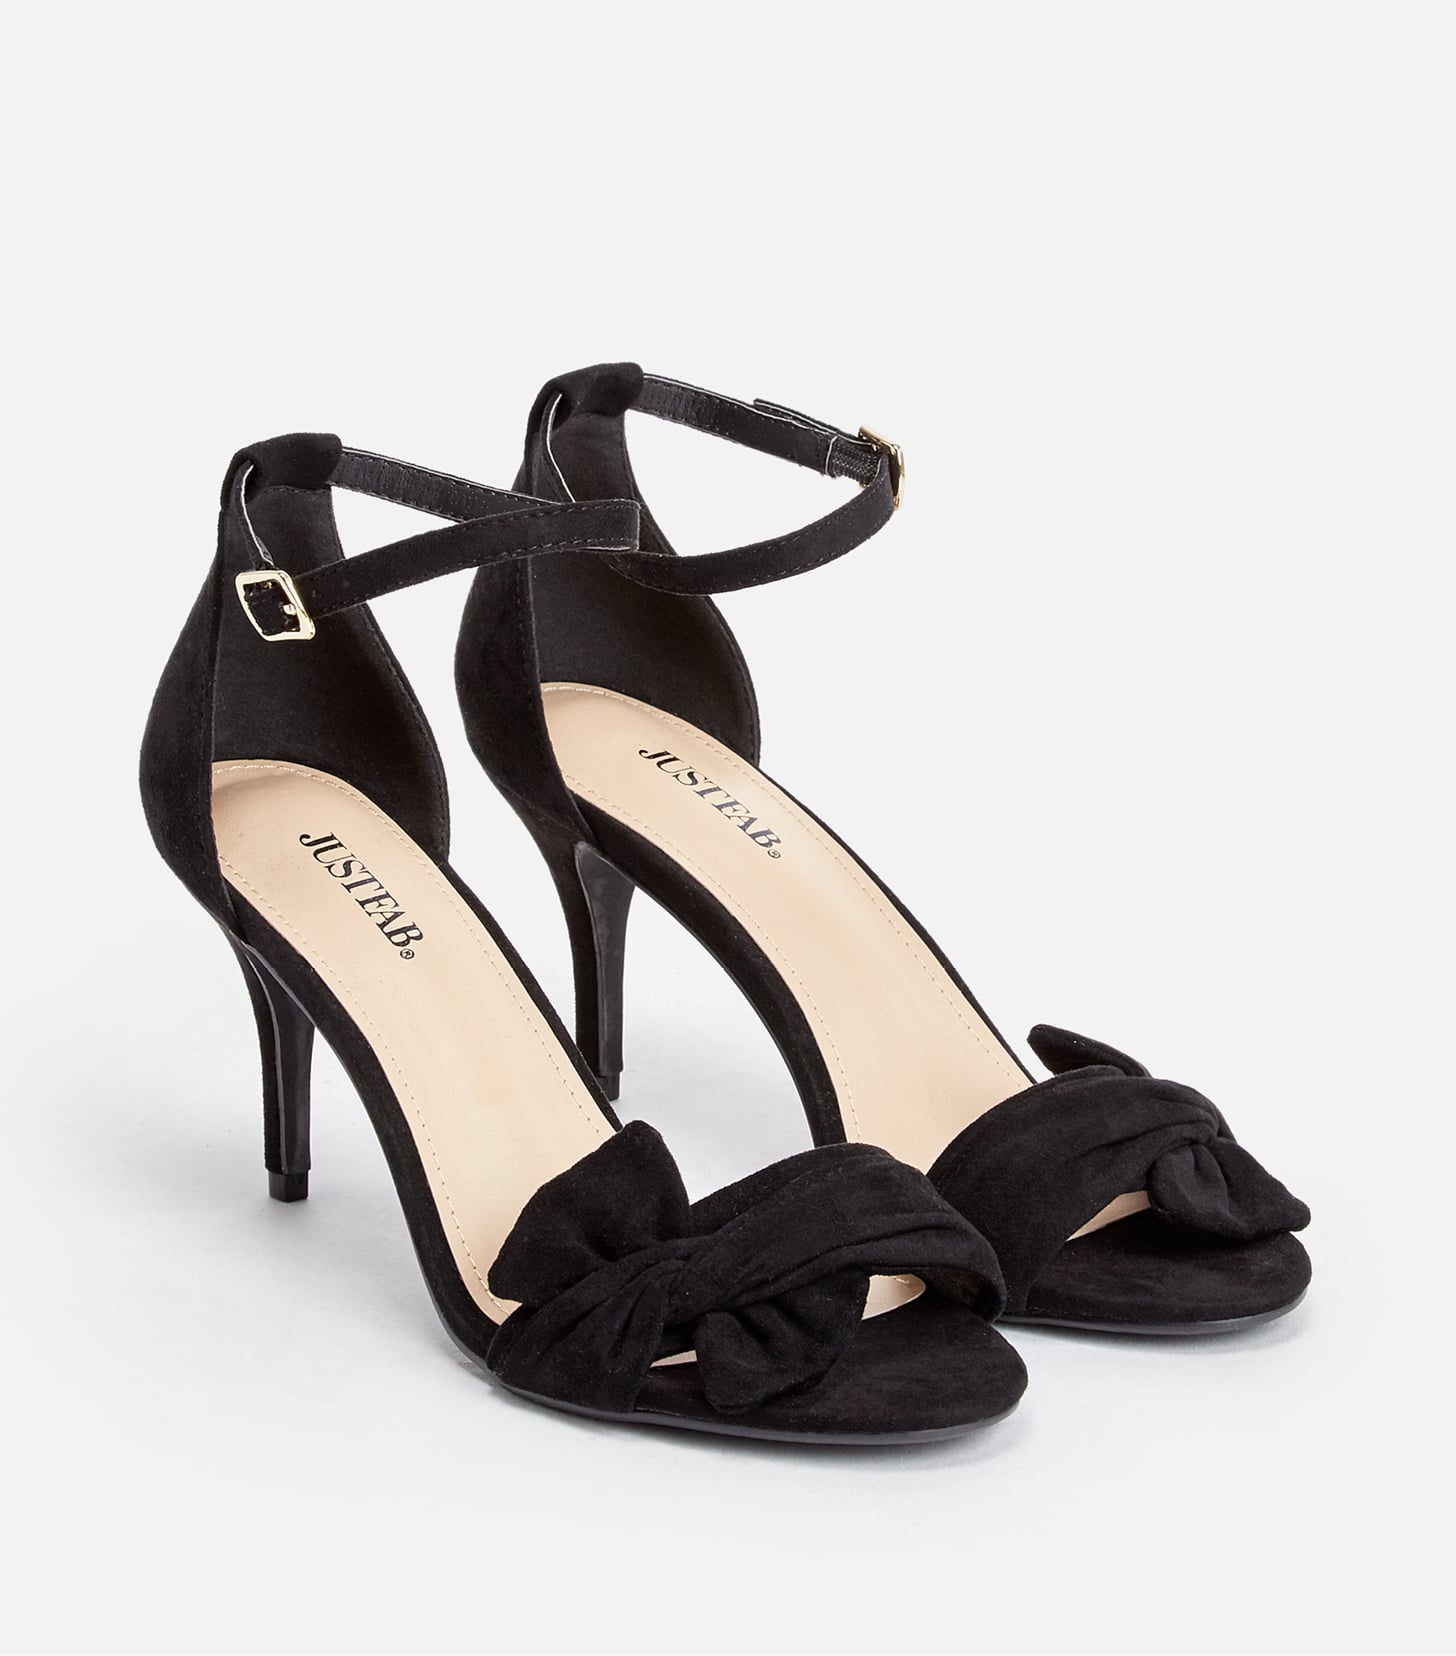 Shop Bold Pumps & Heeled Sandals - Bold Beauty At The Bachelorette